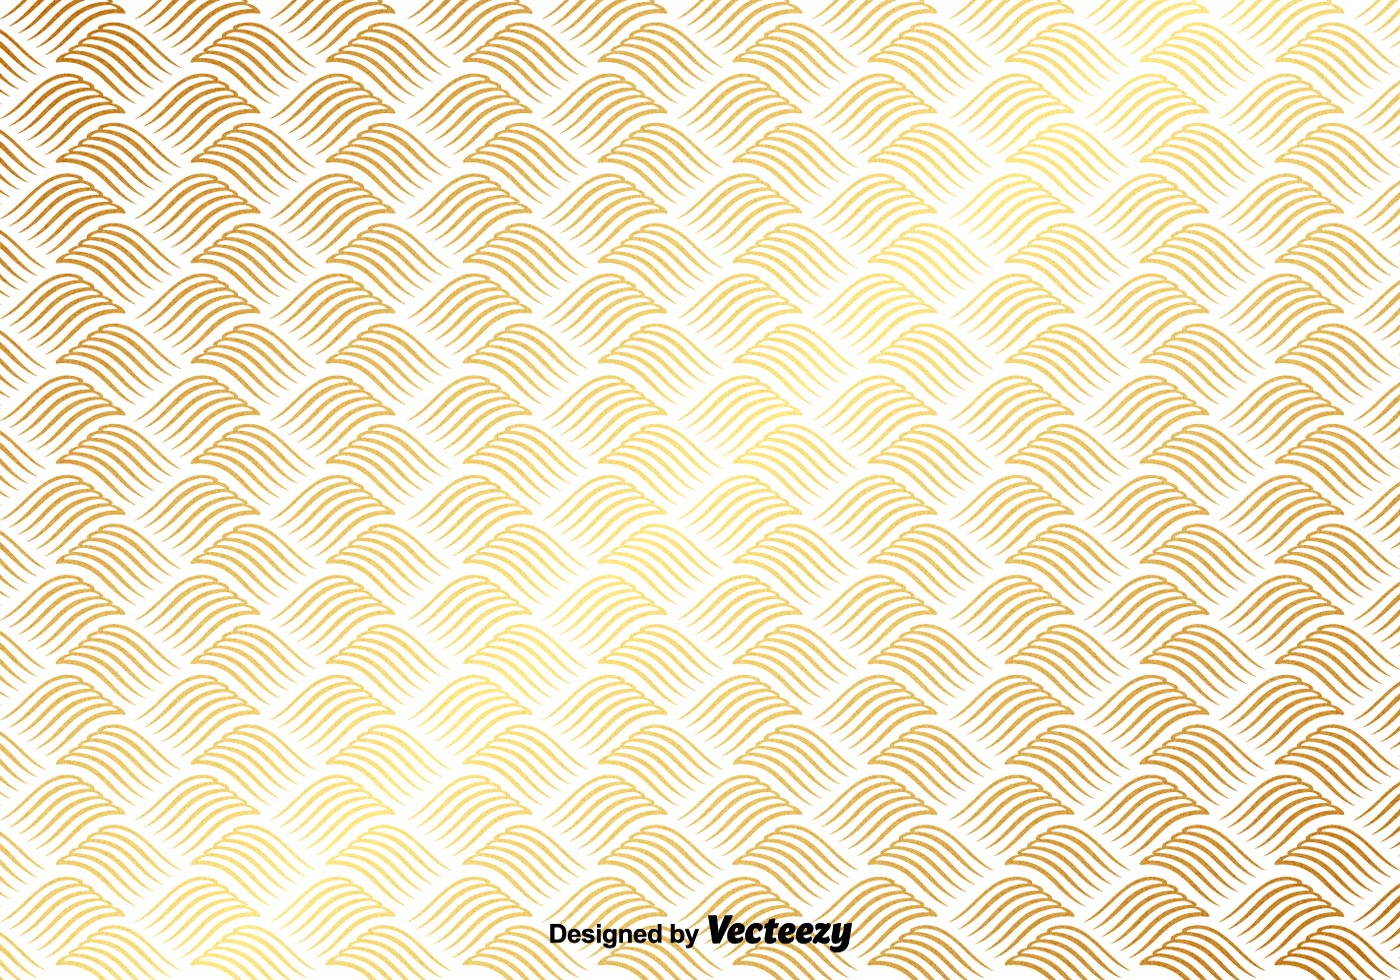 Vector Gold Pattern On White Background  Download Free Vector Art Stock Graphics  Images